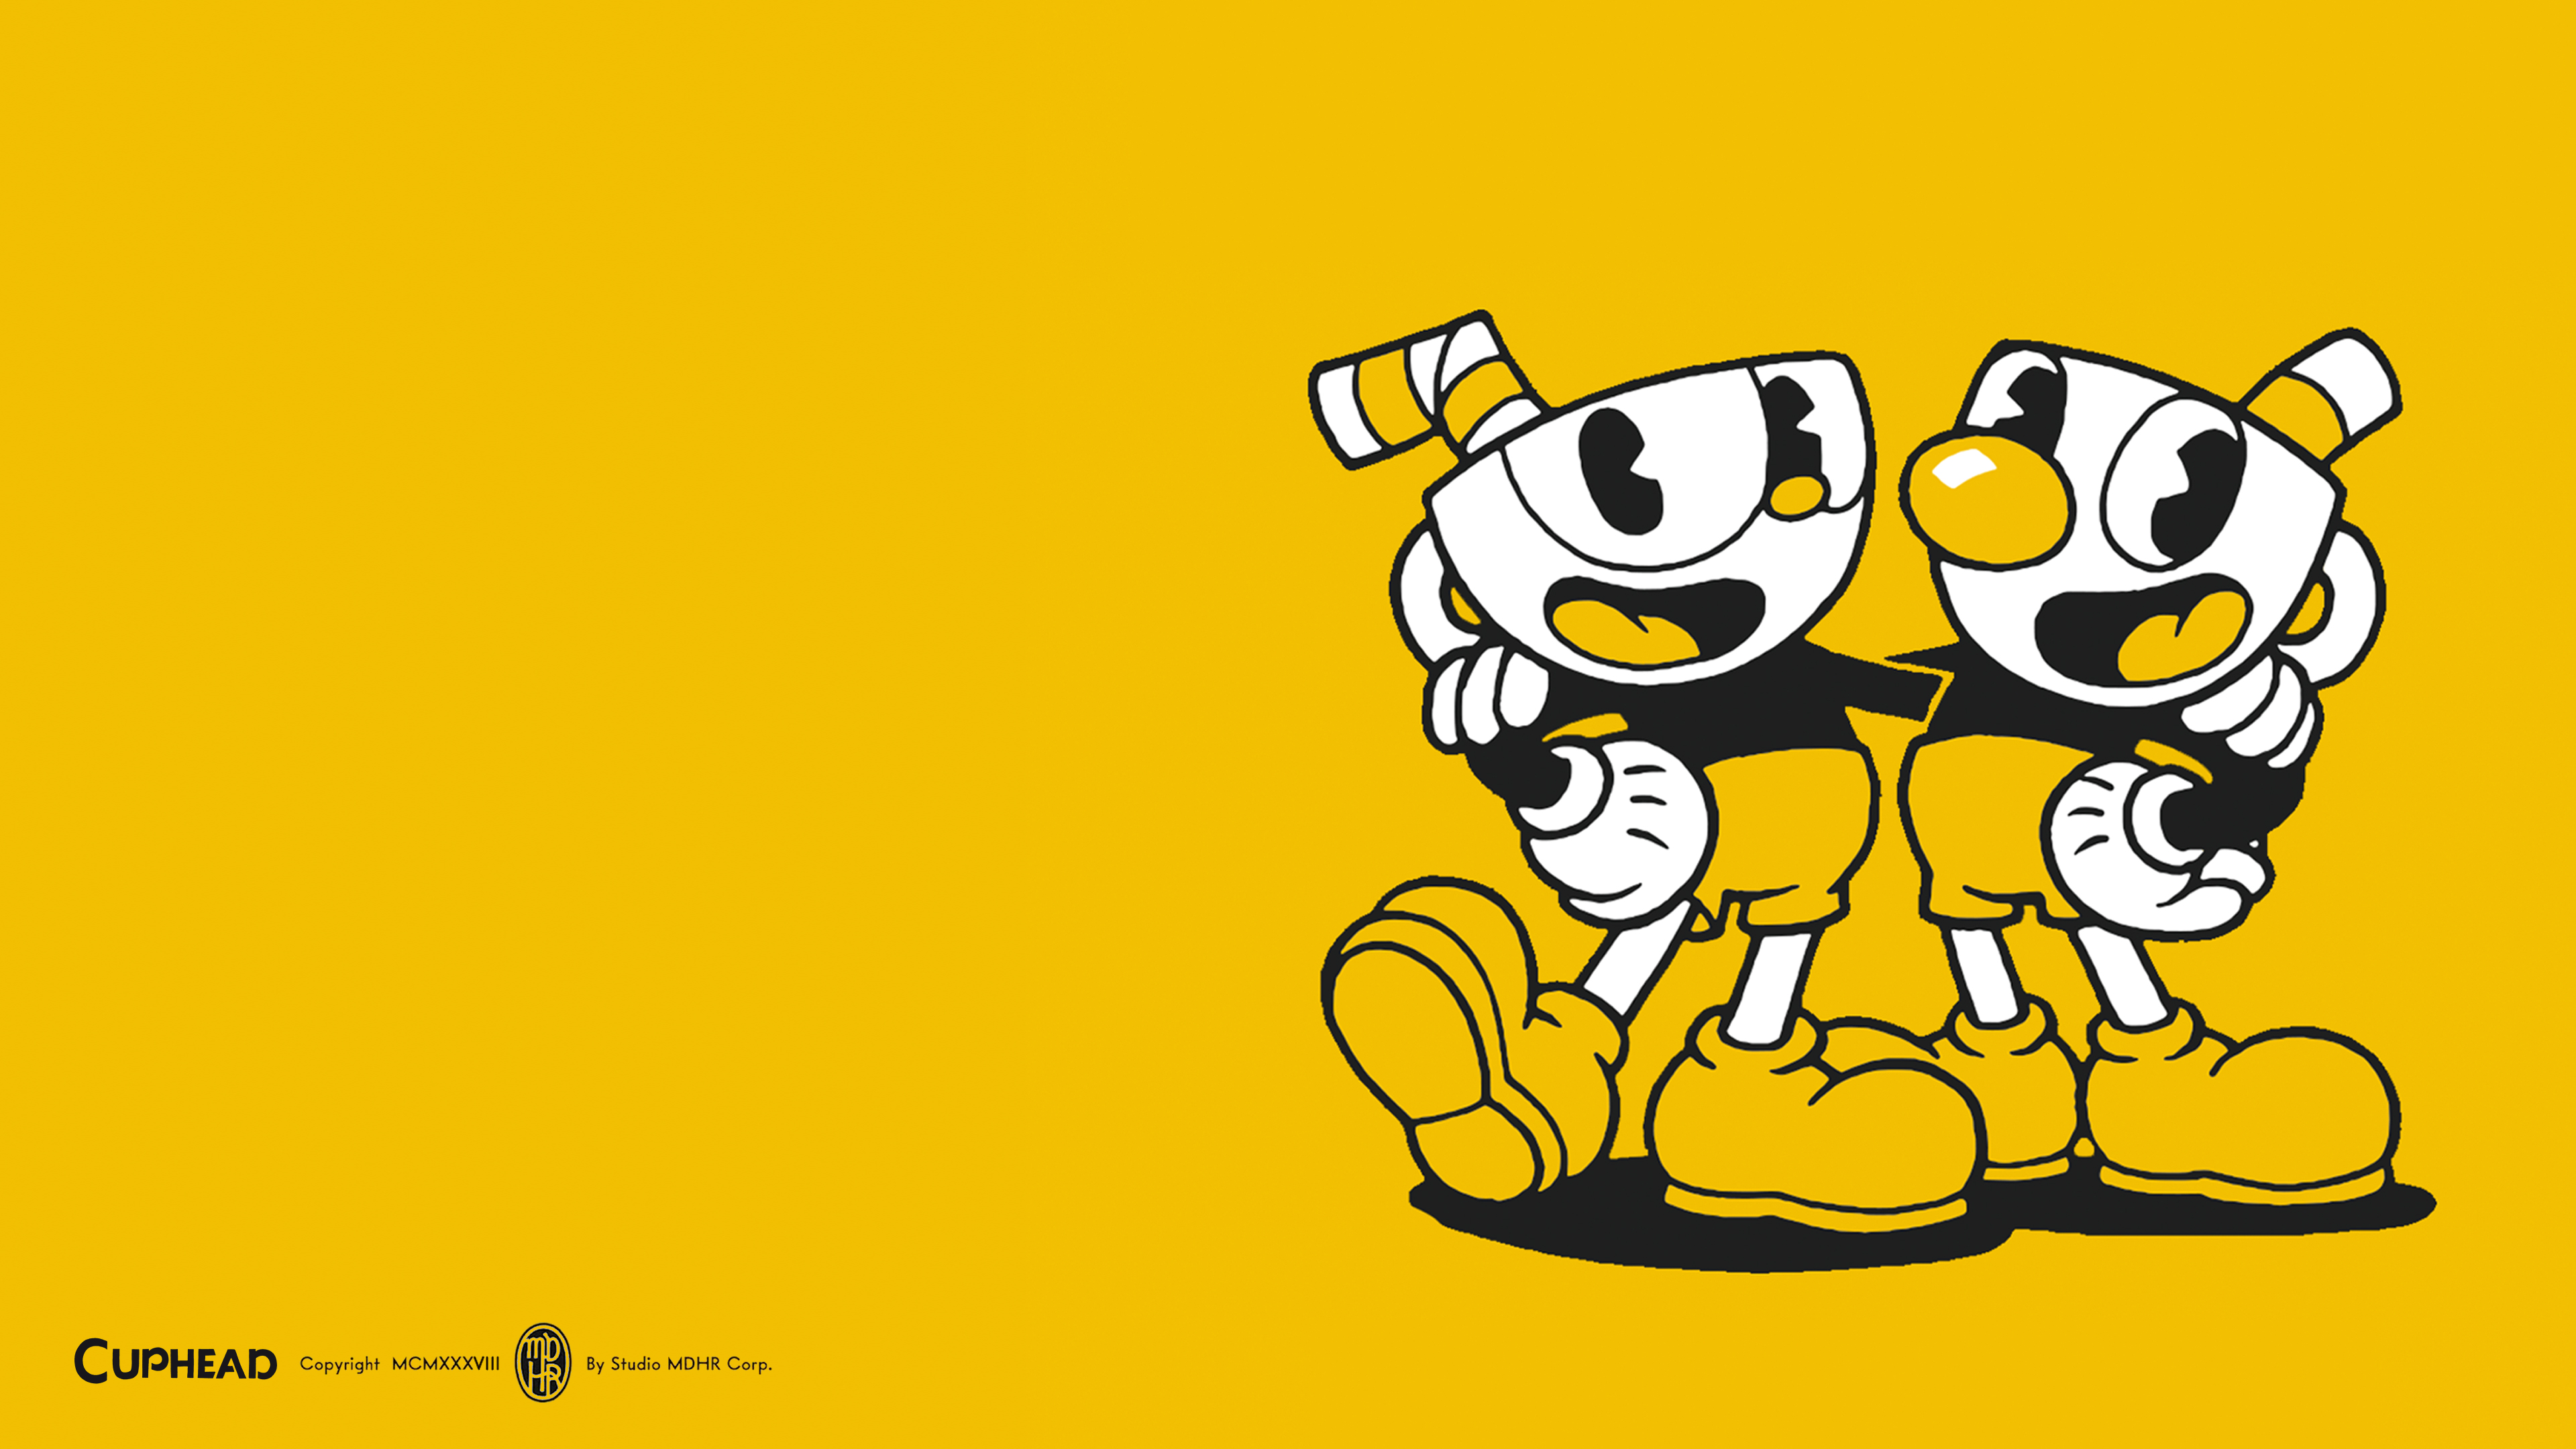 Cuphead and Mugman Monochrome Wallpaper